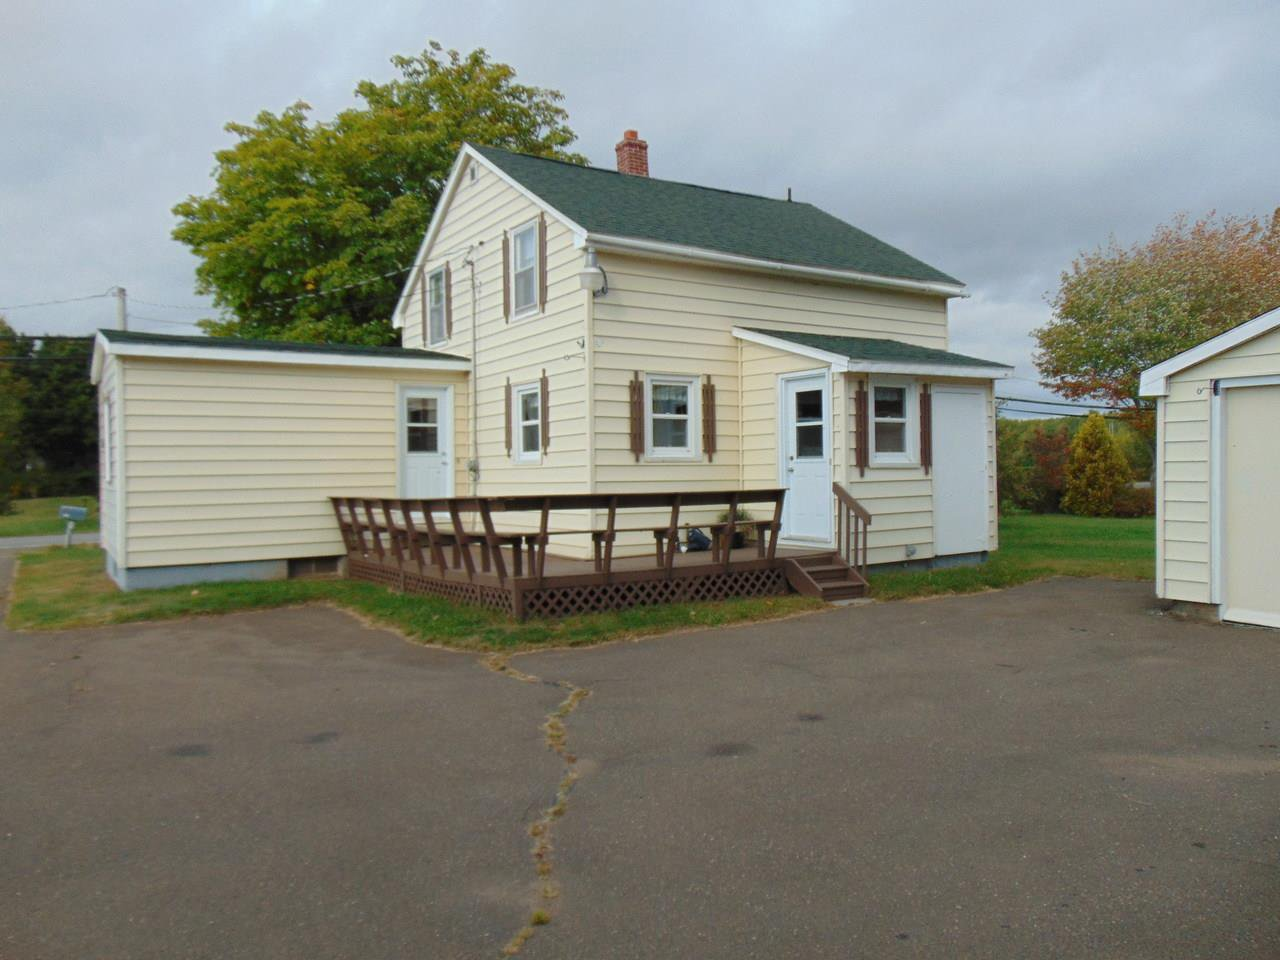 Main Photo: 1598 Highway 359 in Steam Mill: 404-Kings County Residential for sale (Annapolis Valley)  : MLS®# 202020098